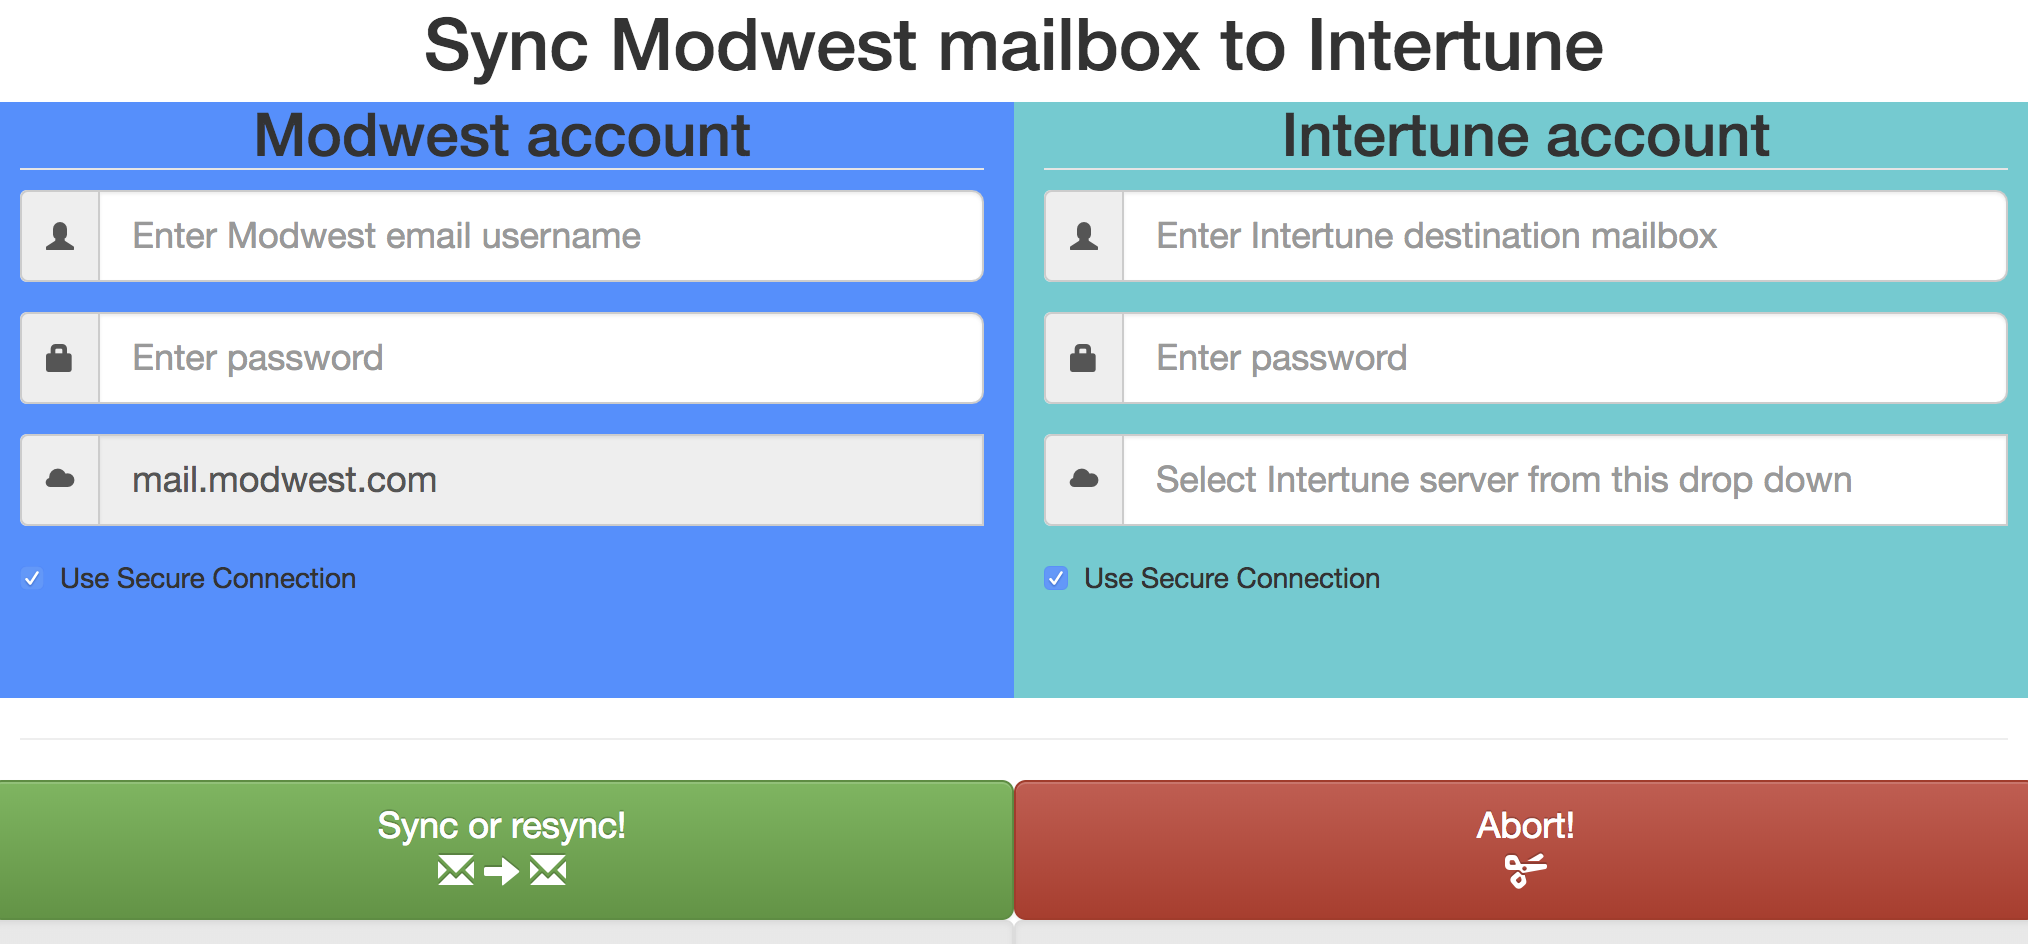 How do I sync my old email from Modwest to Intertune